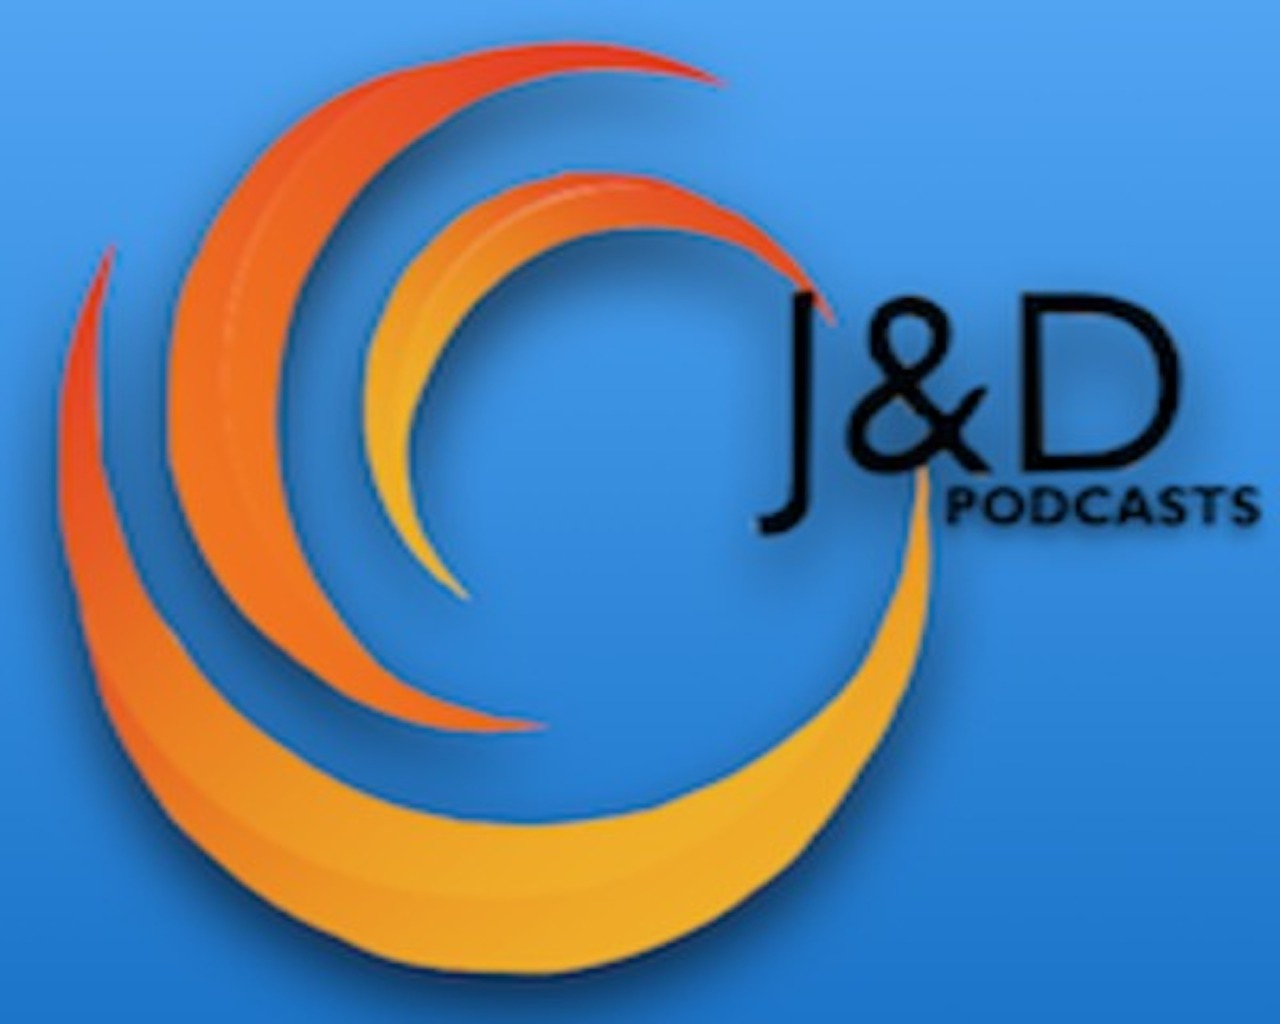 J&D Podcasts